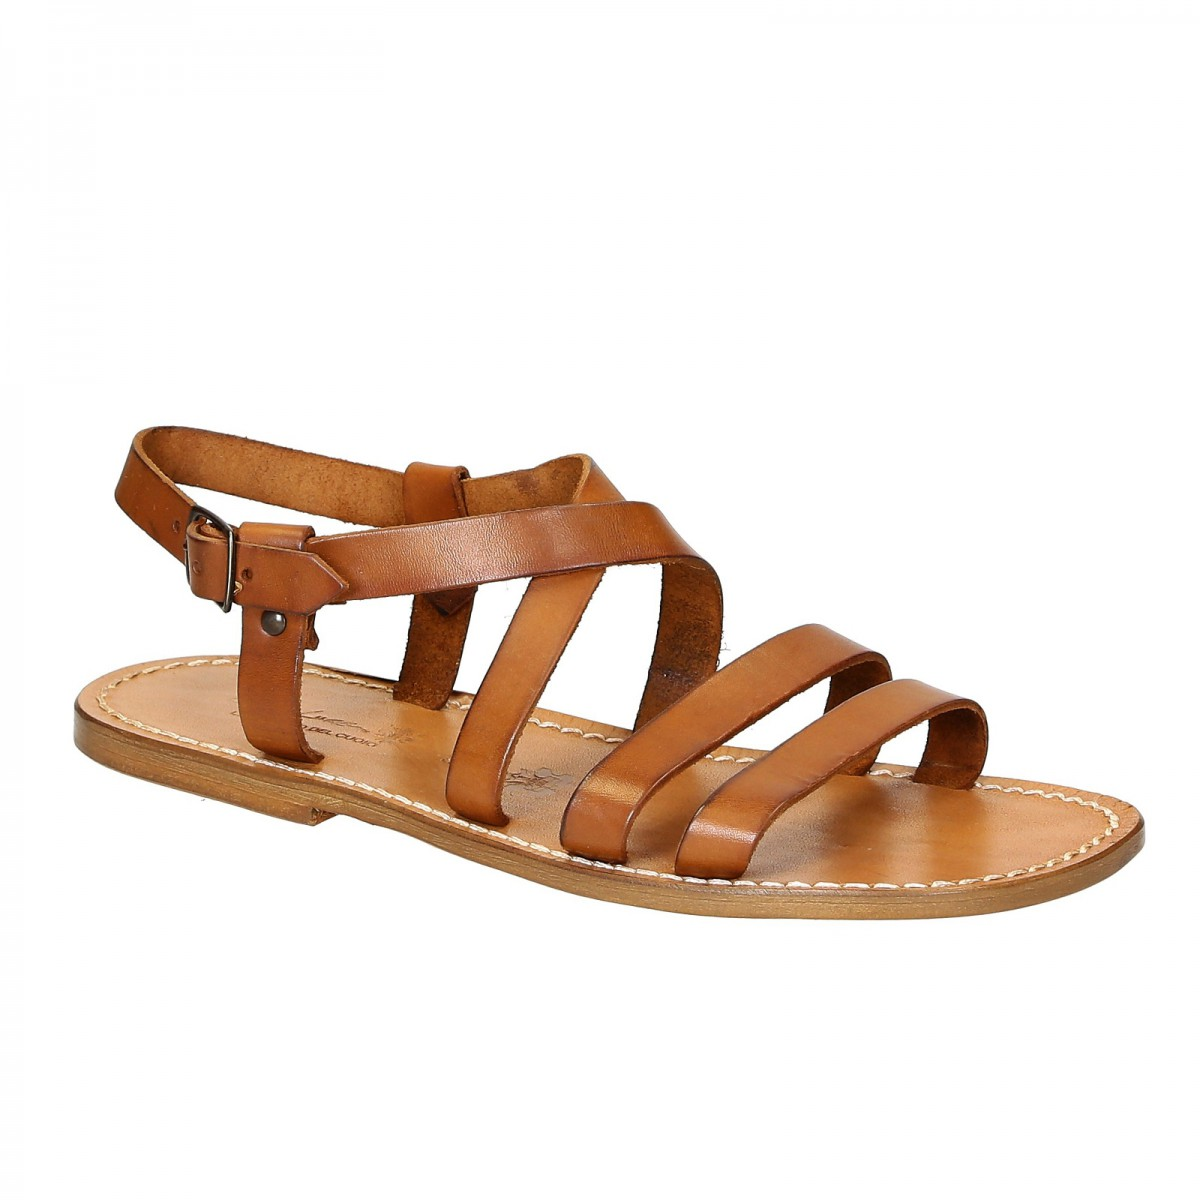 21ac3cd8c Handmade in Italy Franciscan mens sandals in vintage cuir leather. Loading  zoom